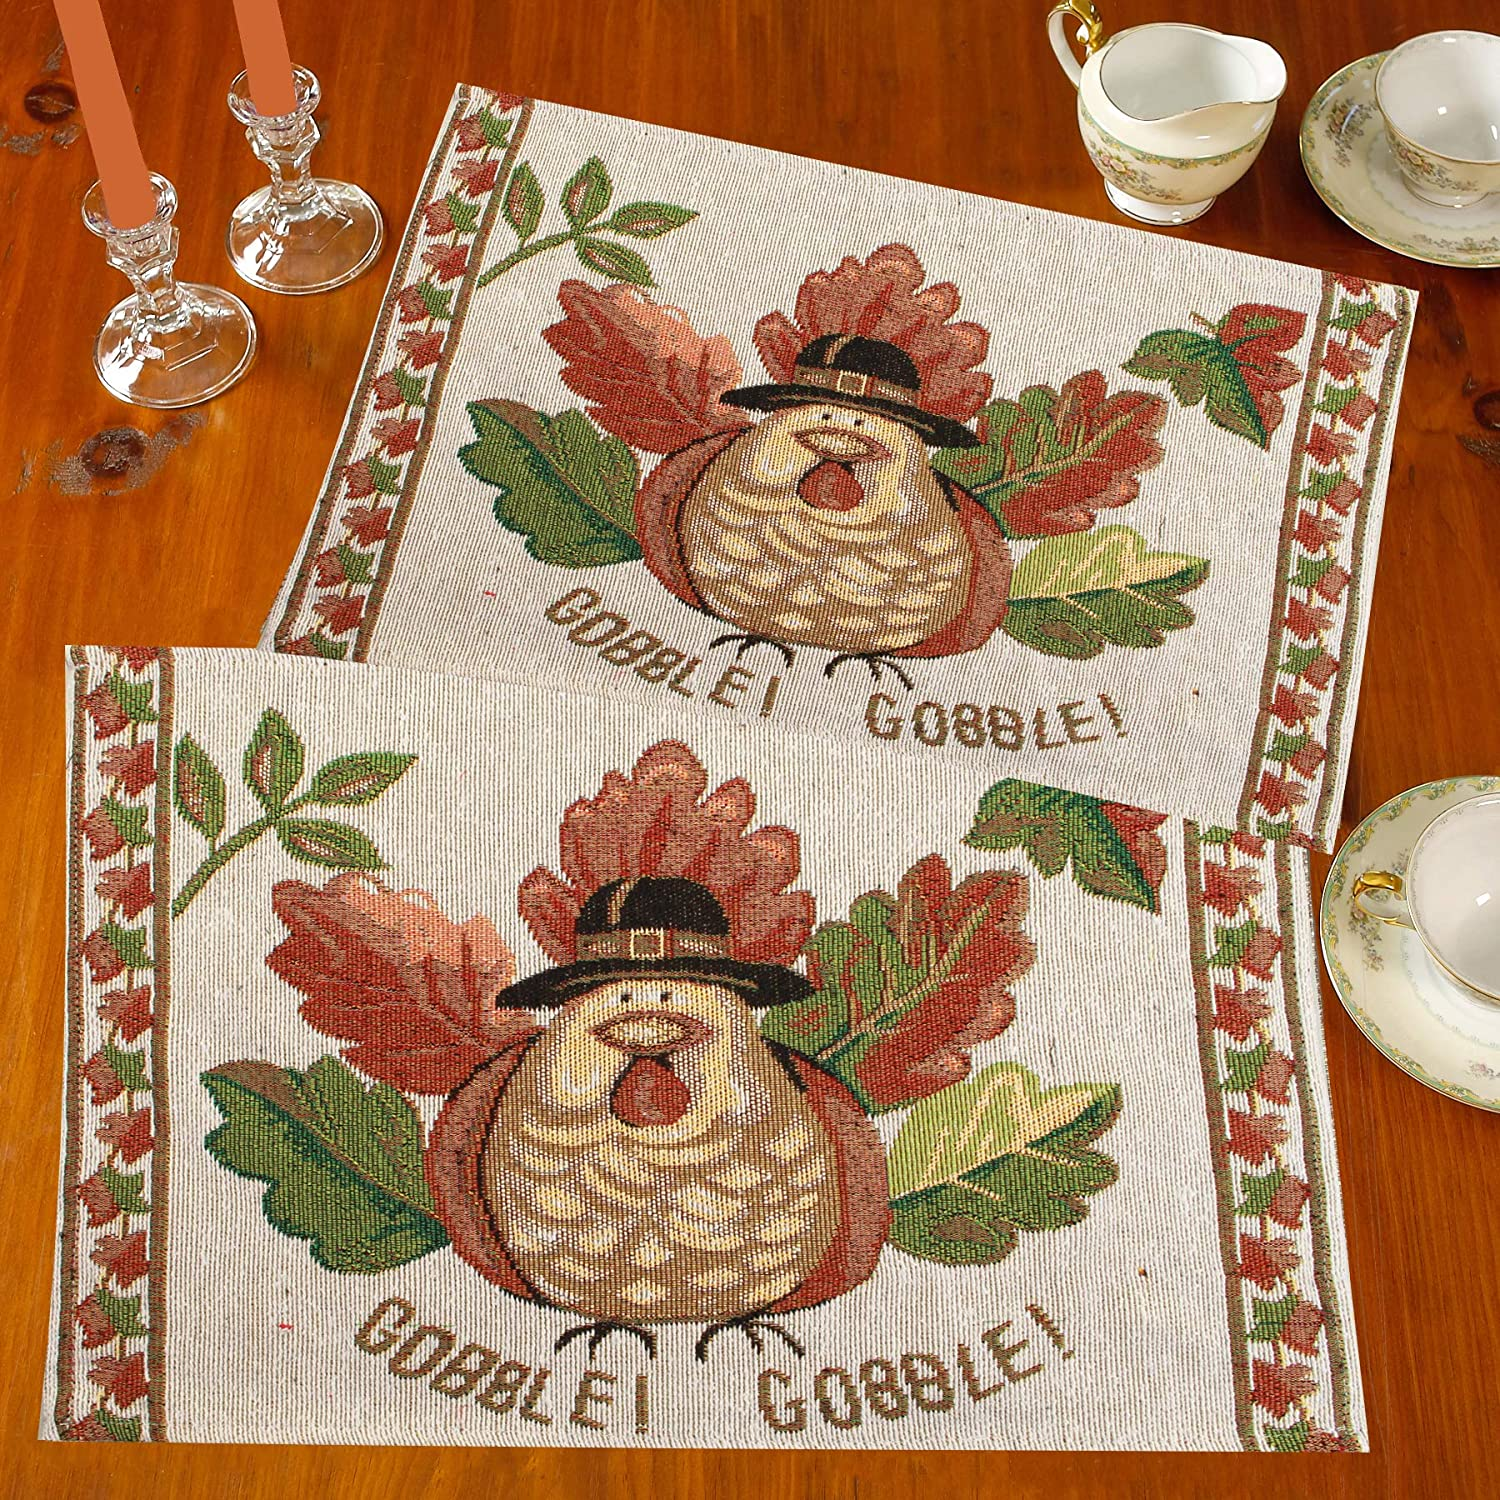 Tapestry Table Placemats for Dinner Parties, Event Décor Set of 4 Placemats Machine Washable (Thanksgiving Gobble Gobble)